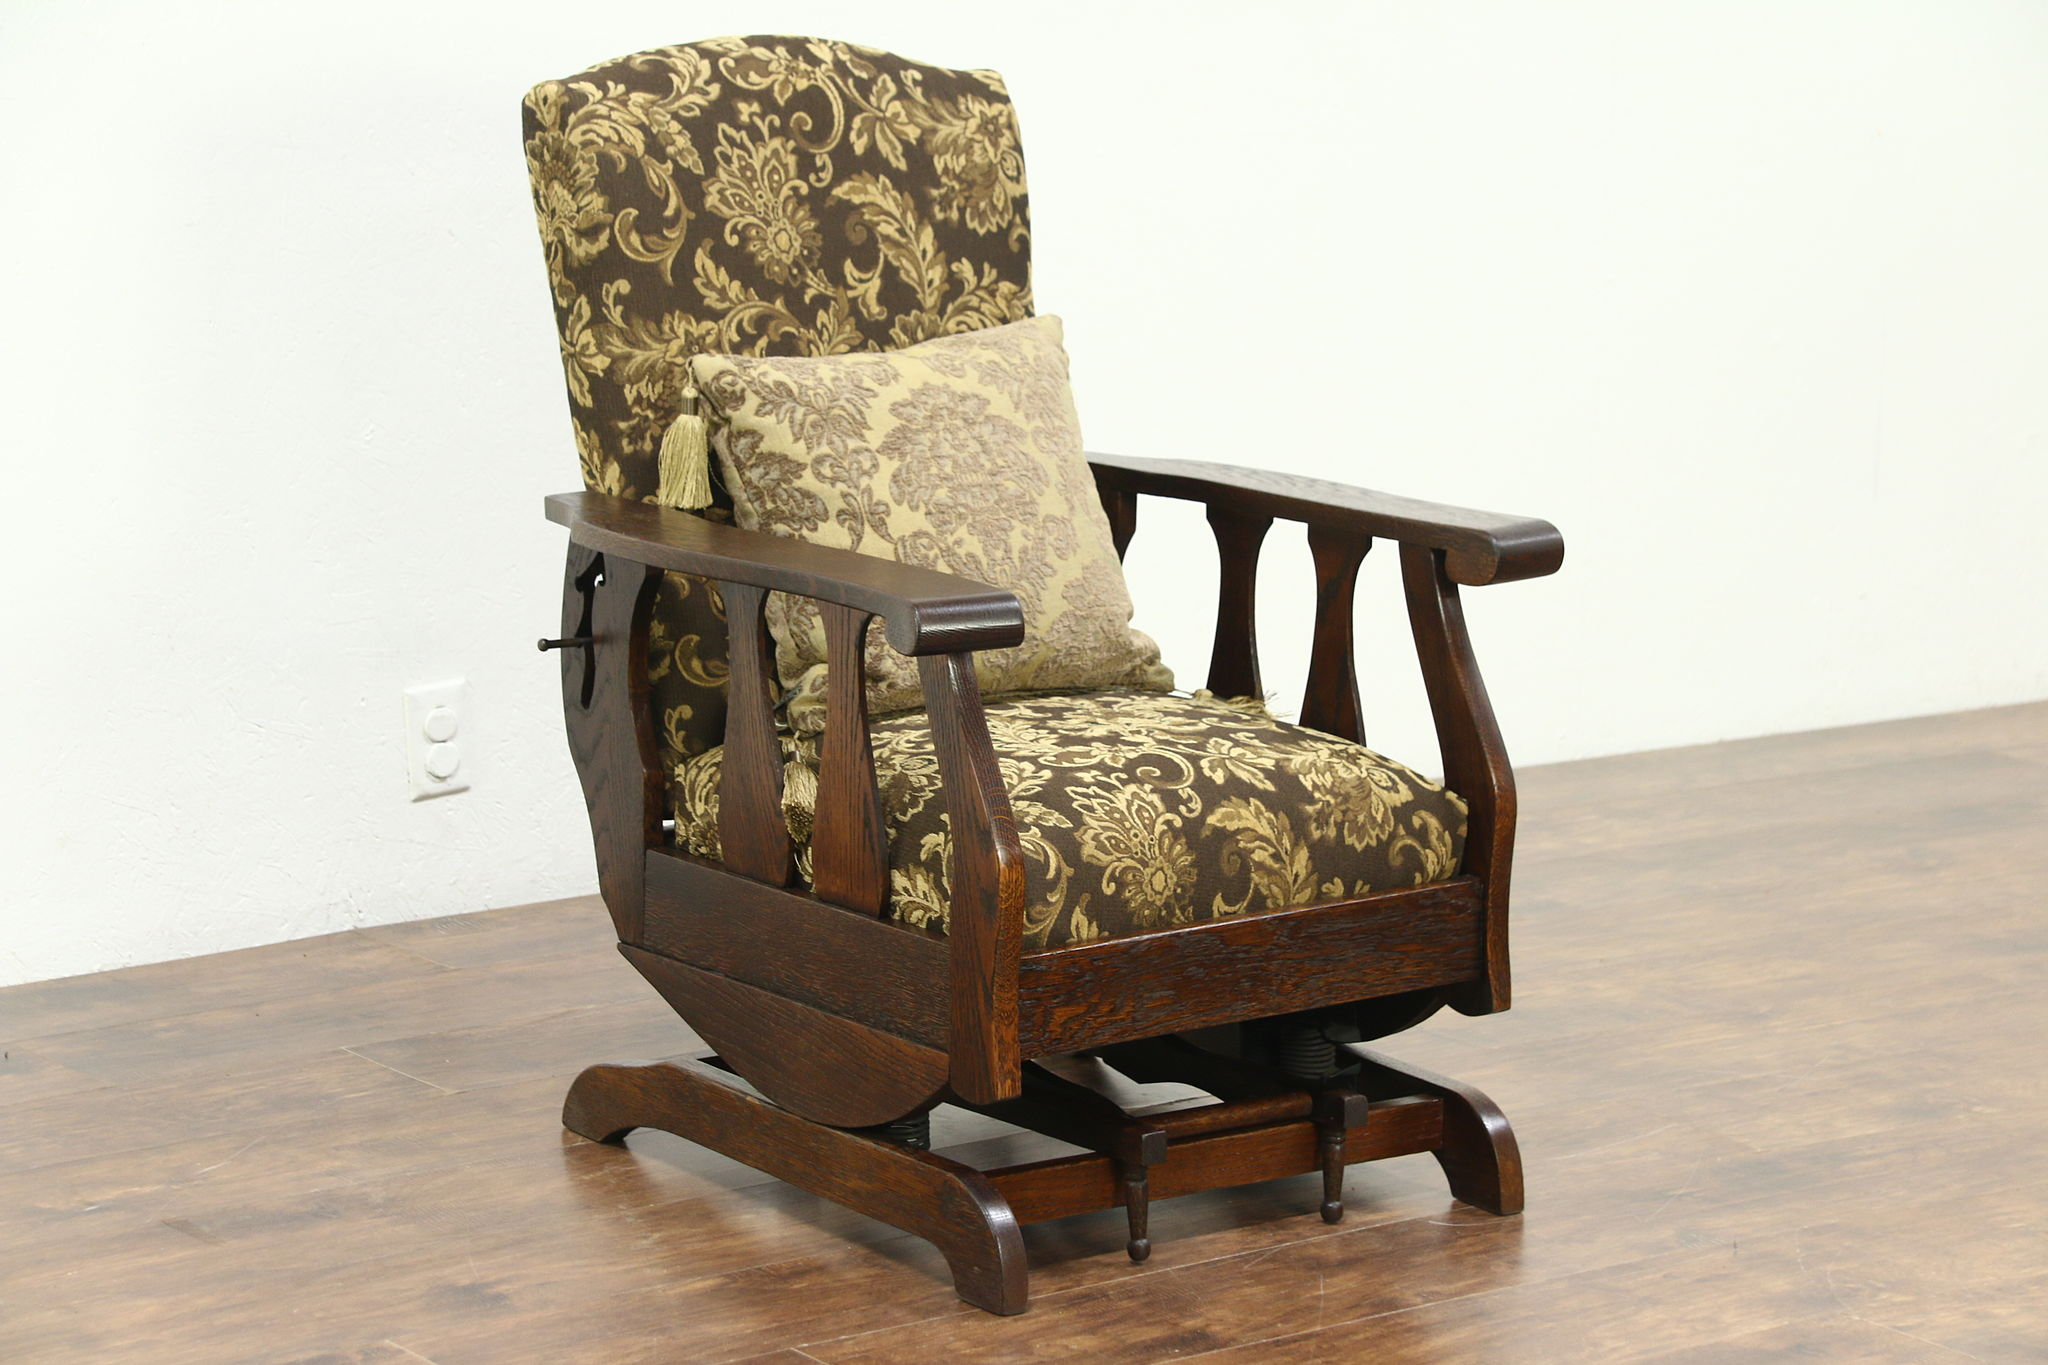 Morris Chairs Sold Oak Antique Morris Chair Recliner Platform Rocker